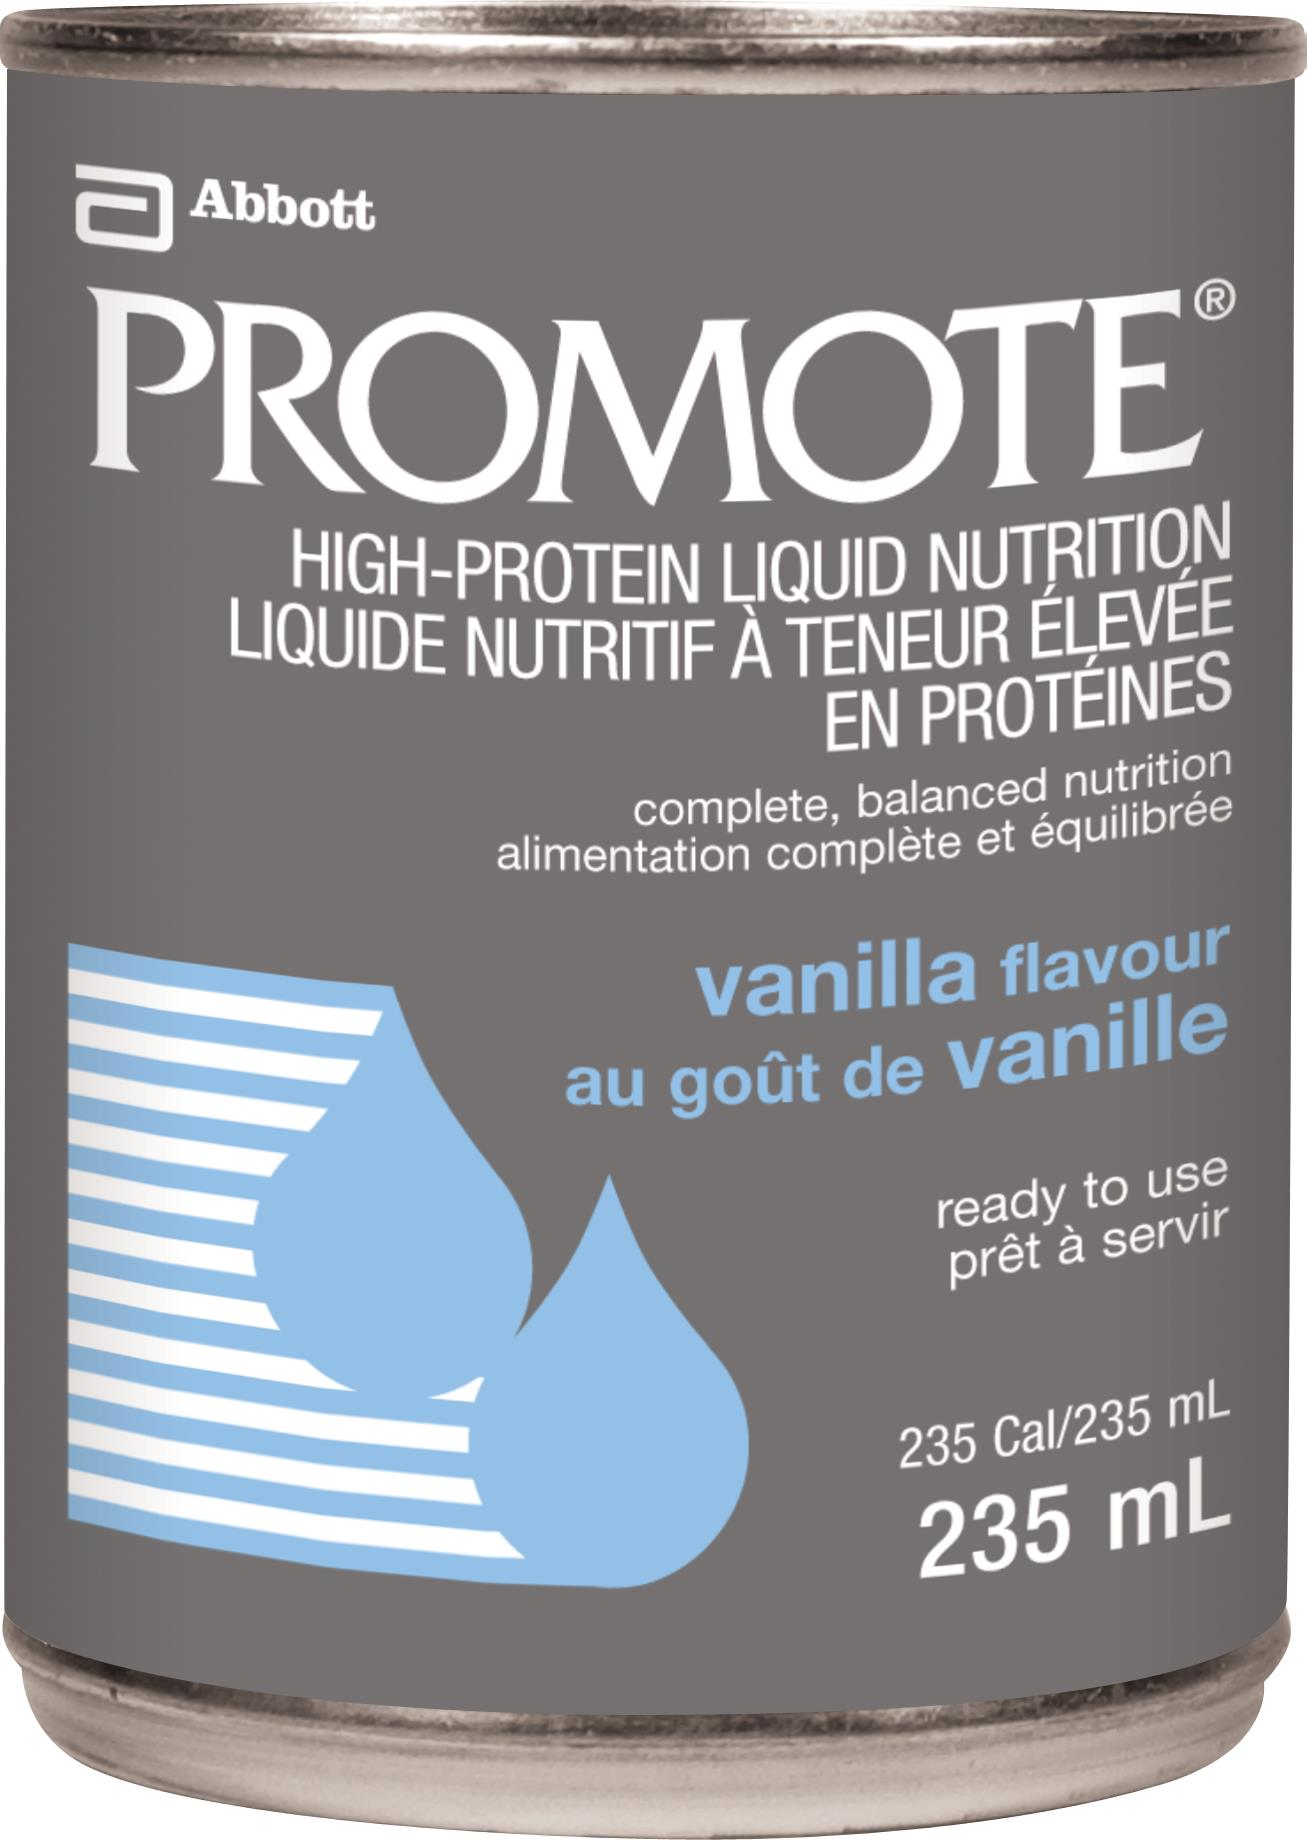 Certain Abbott brand formulated liquid nutrition products in